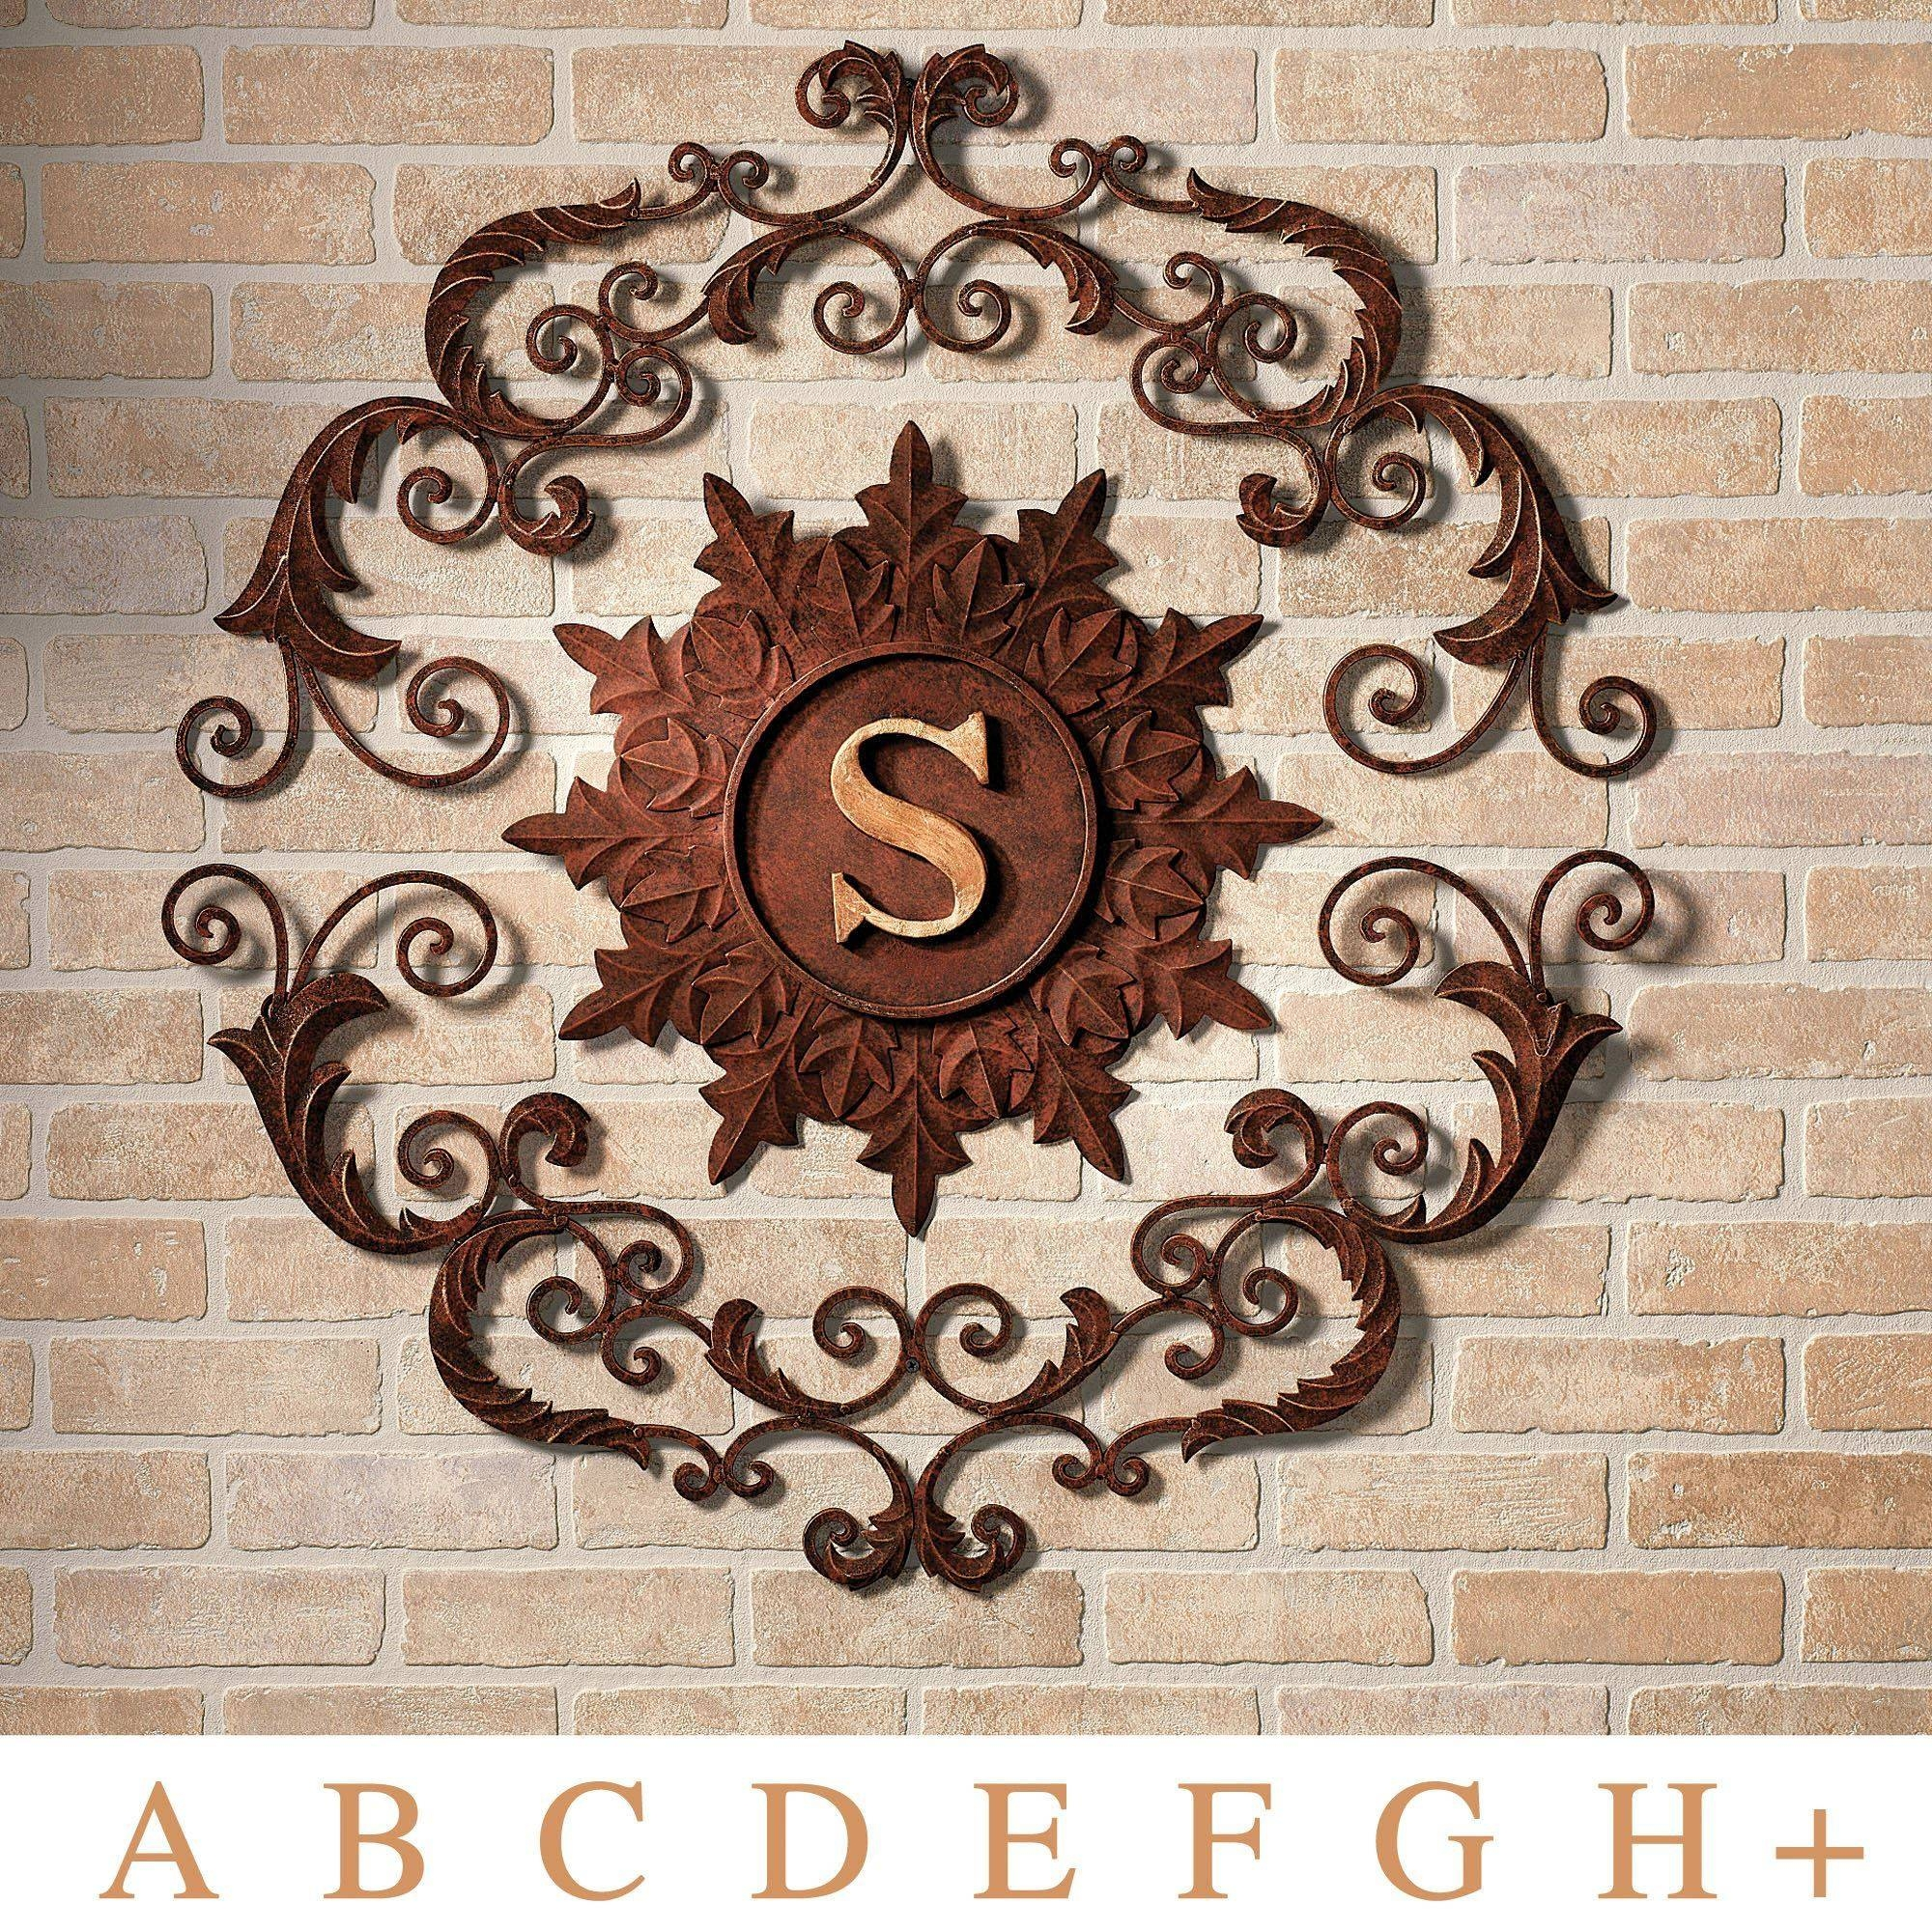 Kingston Monogram Metal Wall Grille Regarding Current Monogram Metal Wall Art (View 6 of 20)